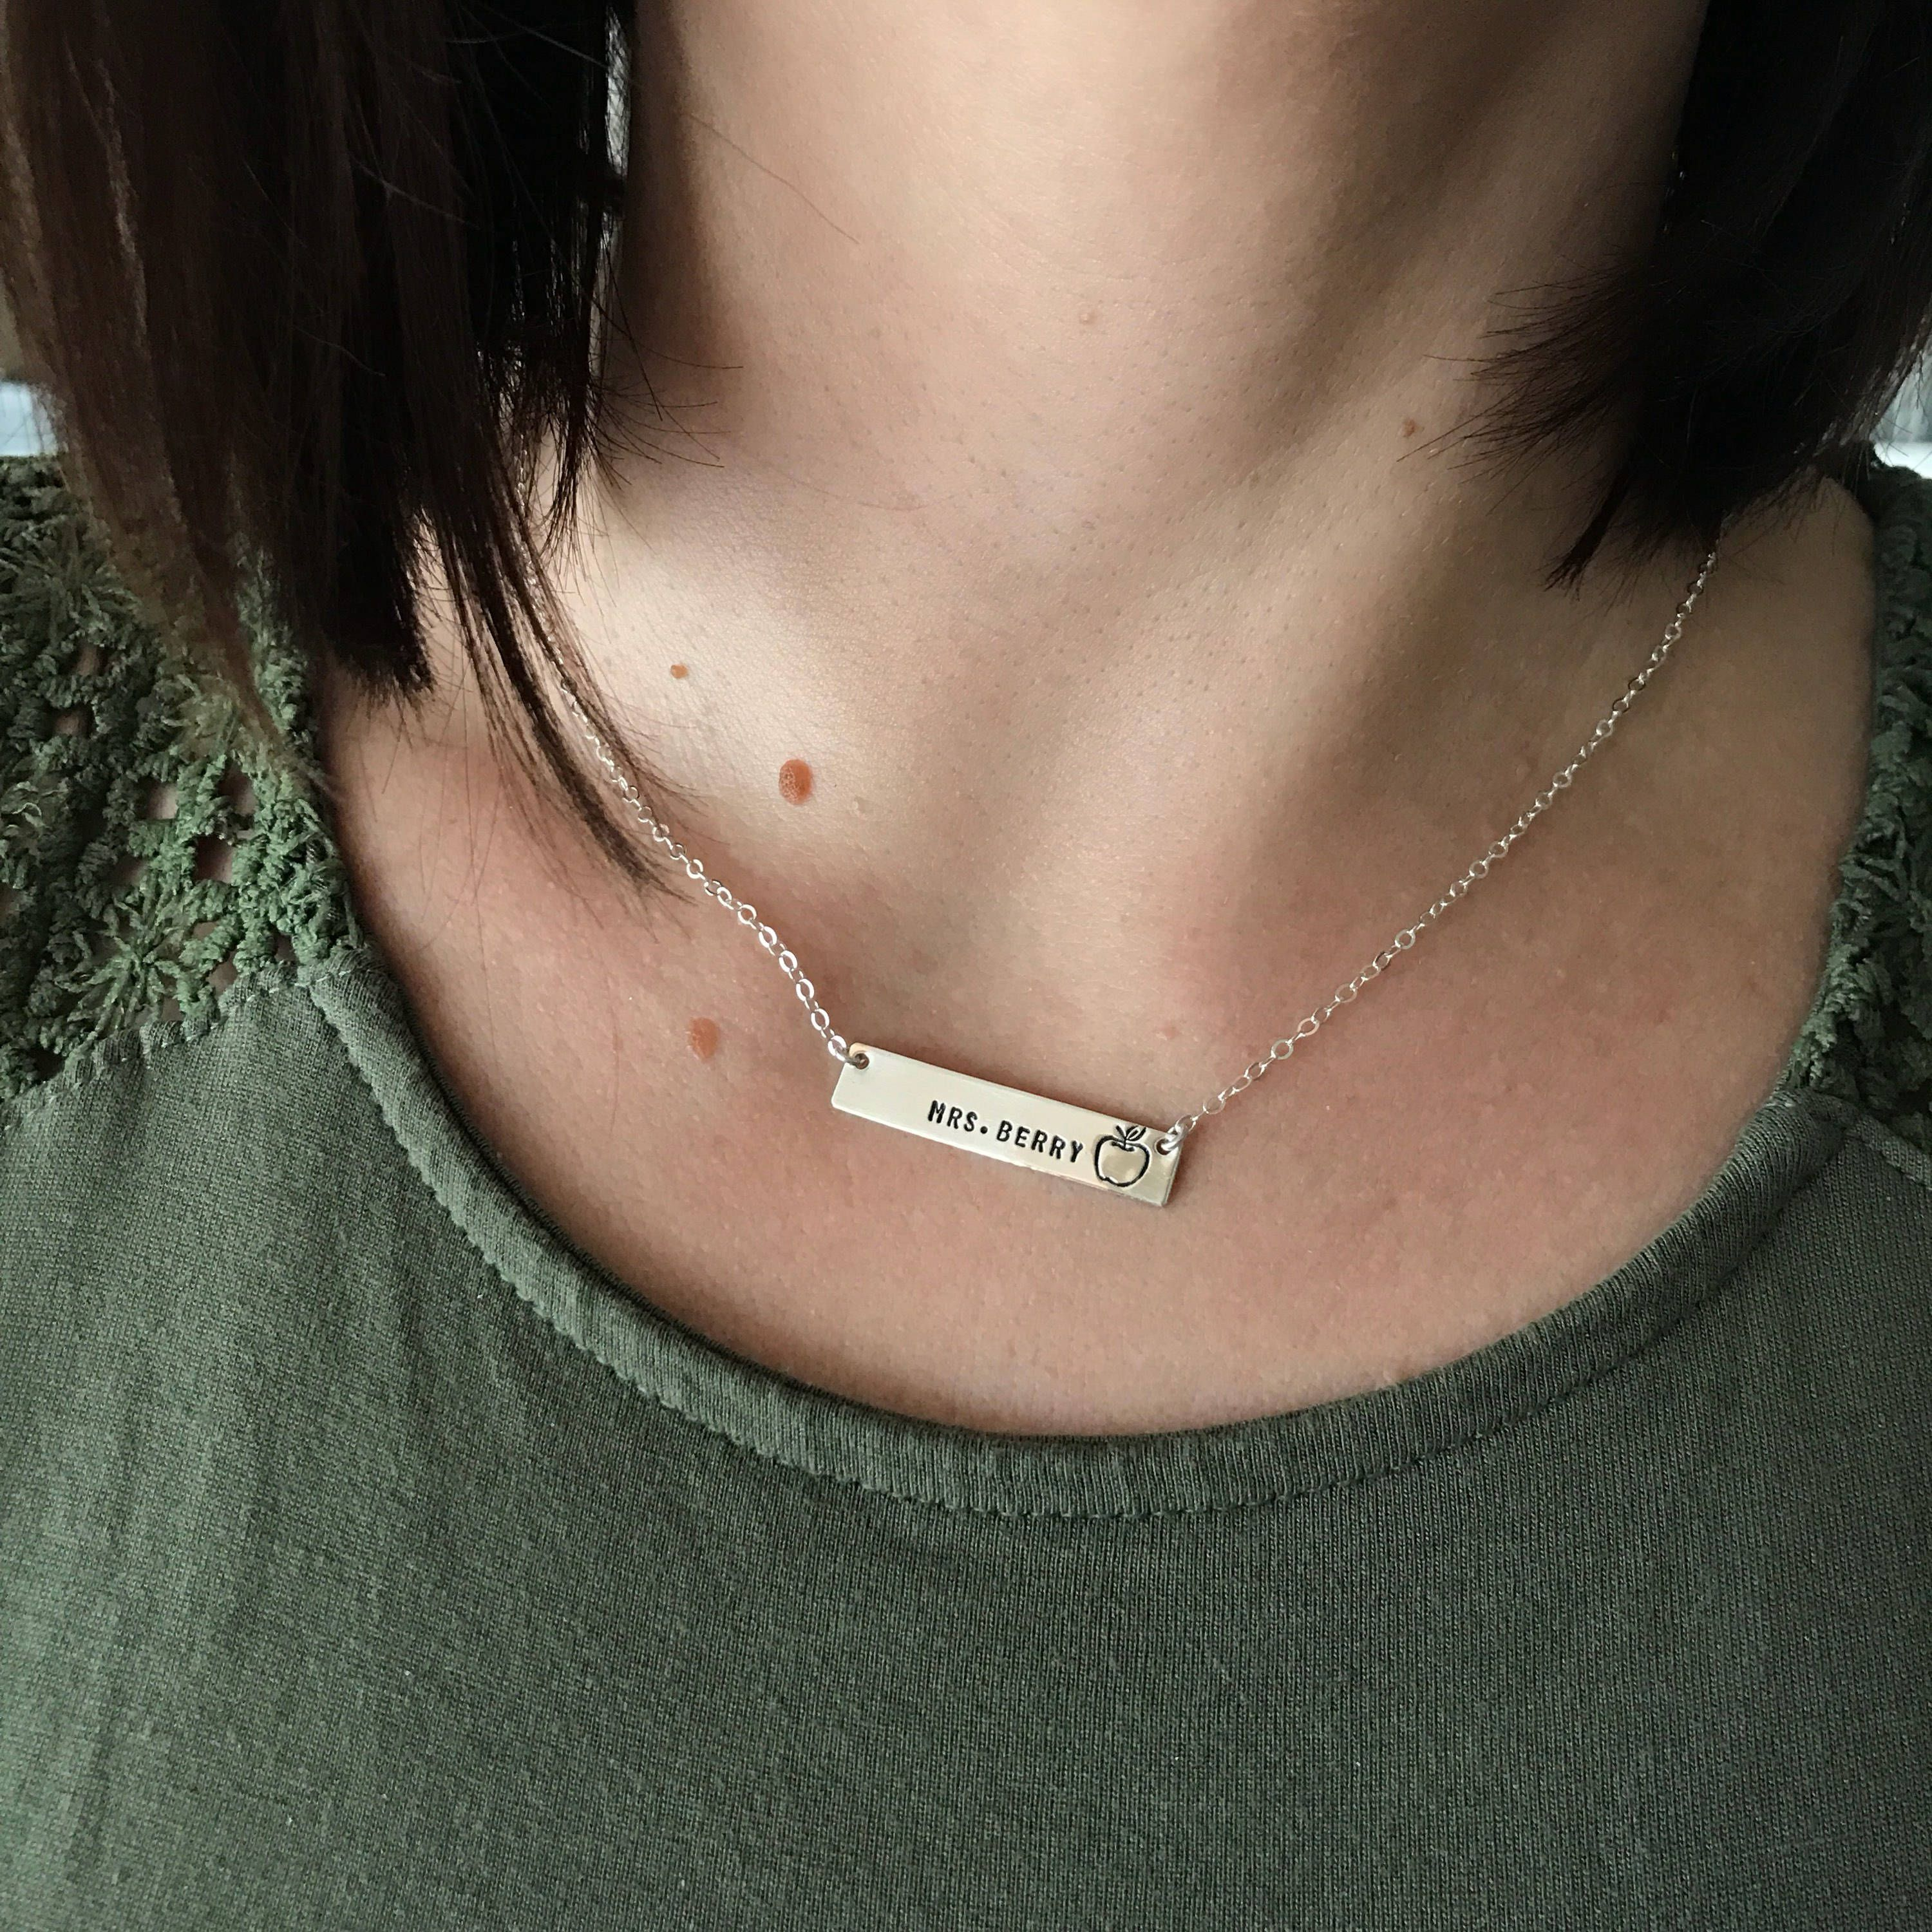 Teacher apple appreciation necklace, world's best teacher, bar necklace, sterling silver personalized, stamped bar, solid sterling bar